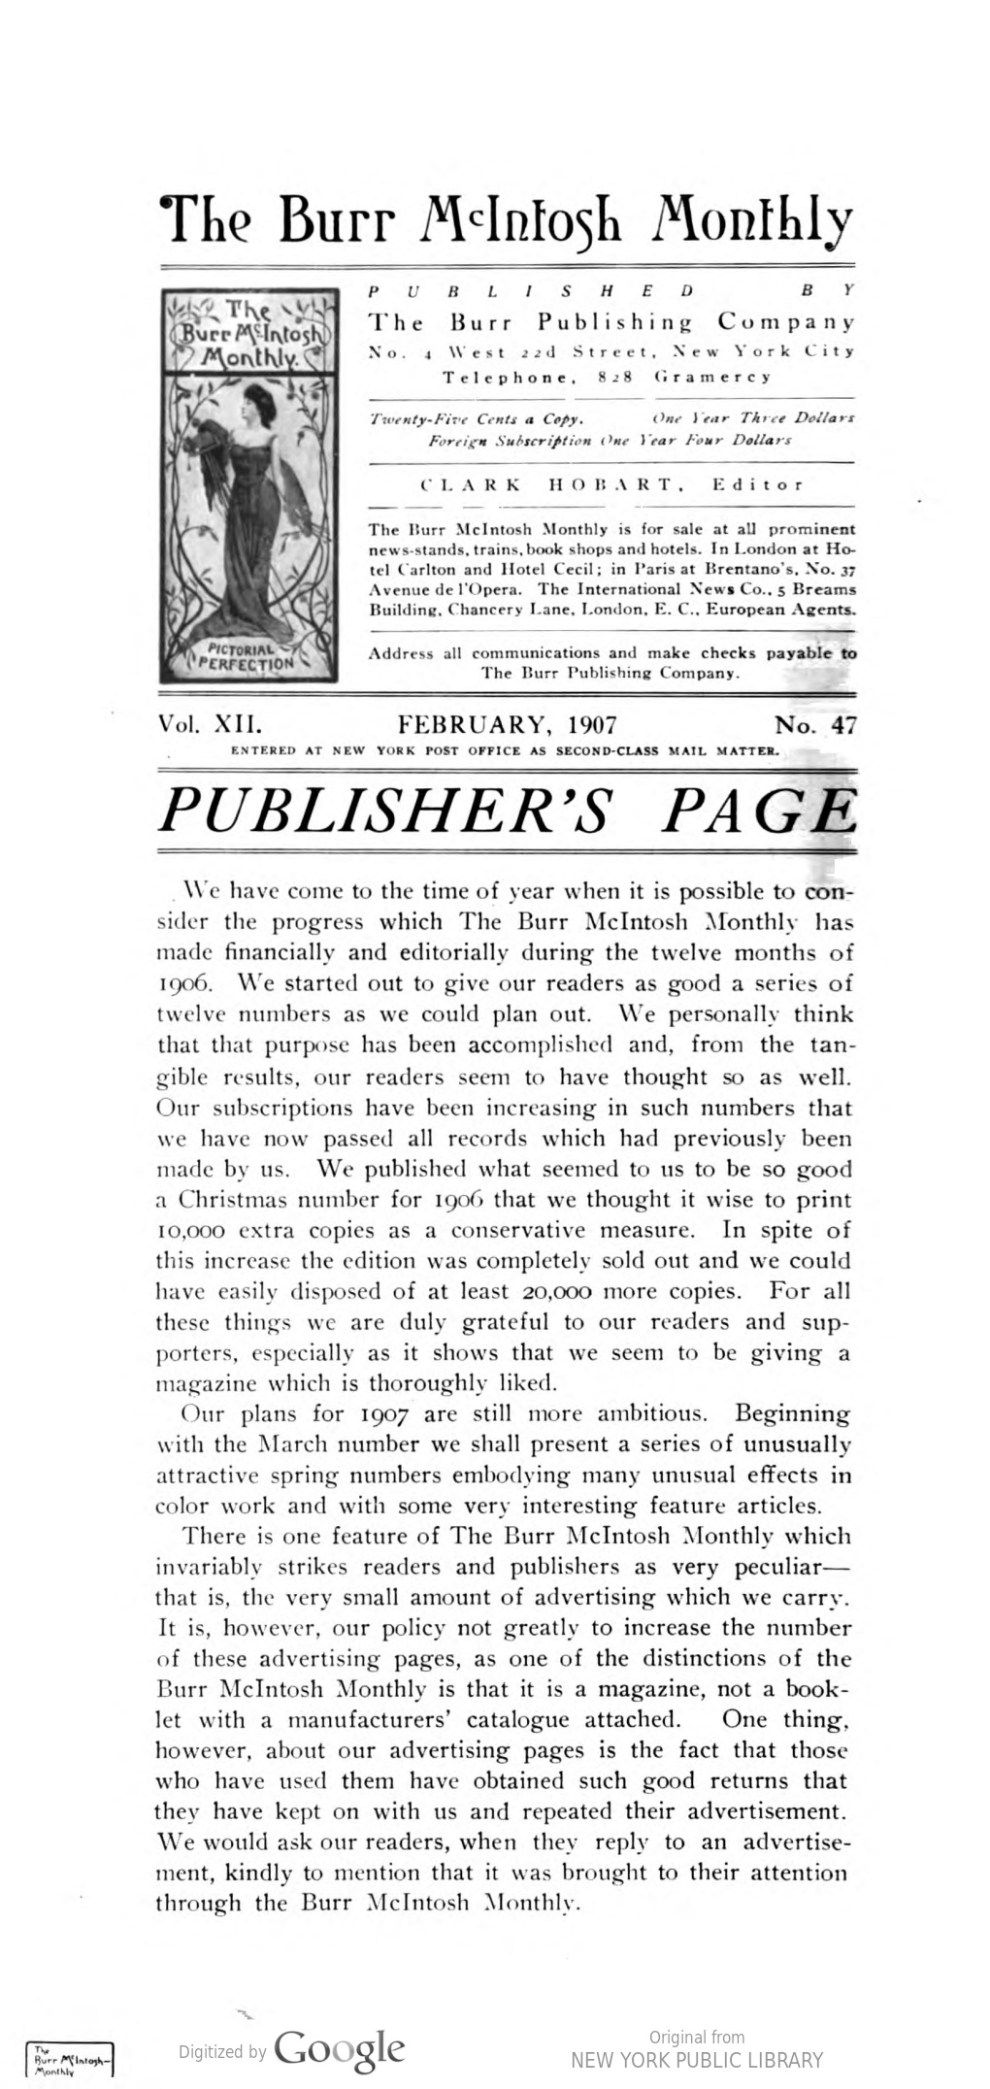 "The Burr McIntosh Monthly, New York, NY, ""The Winter Exhibition of the National Academy of Design"" edited by Clark Hobart, February, 1907, Volume 12, No. 47, not illustrated."